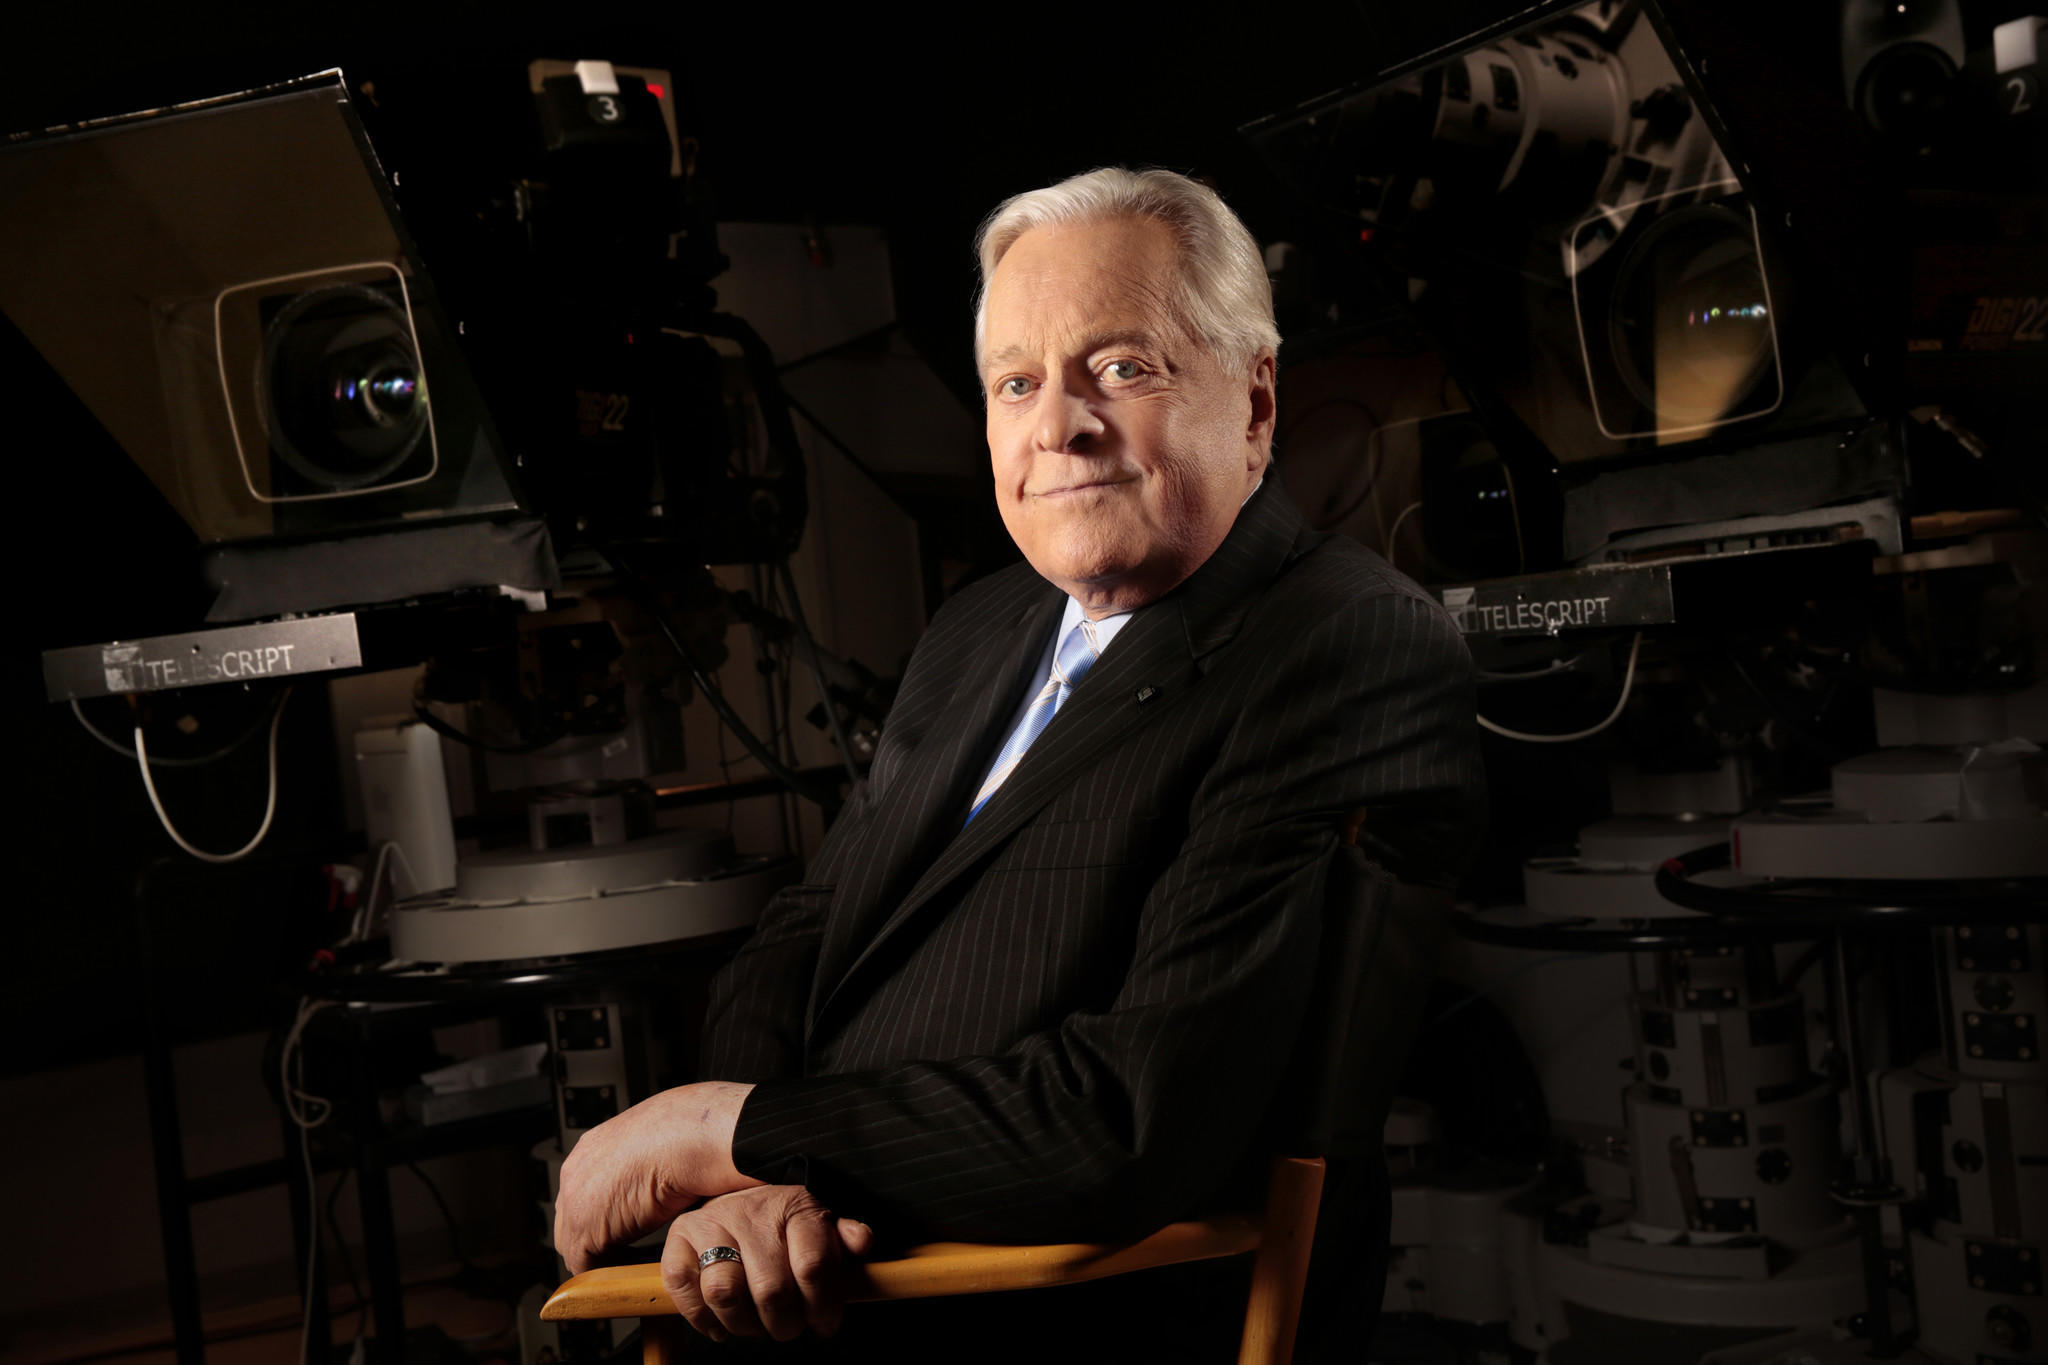 turner classic movies host robert osborne dead at 84 la